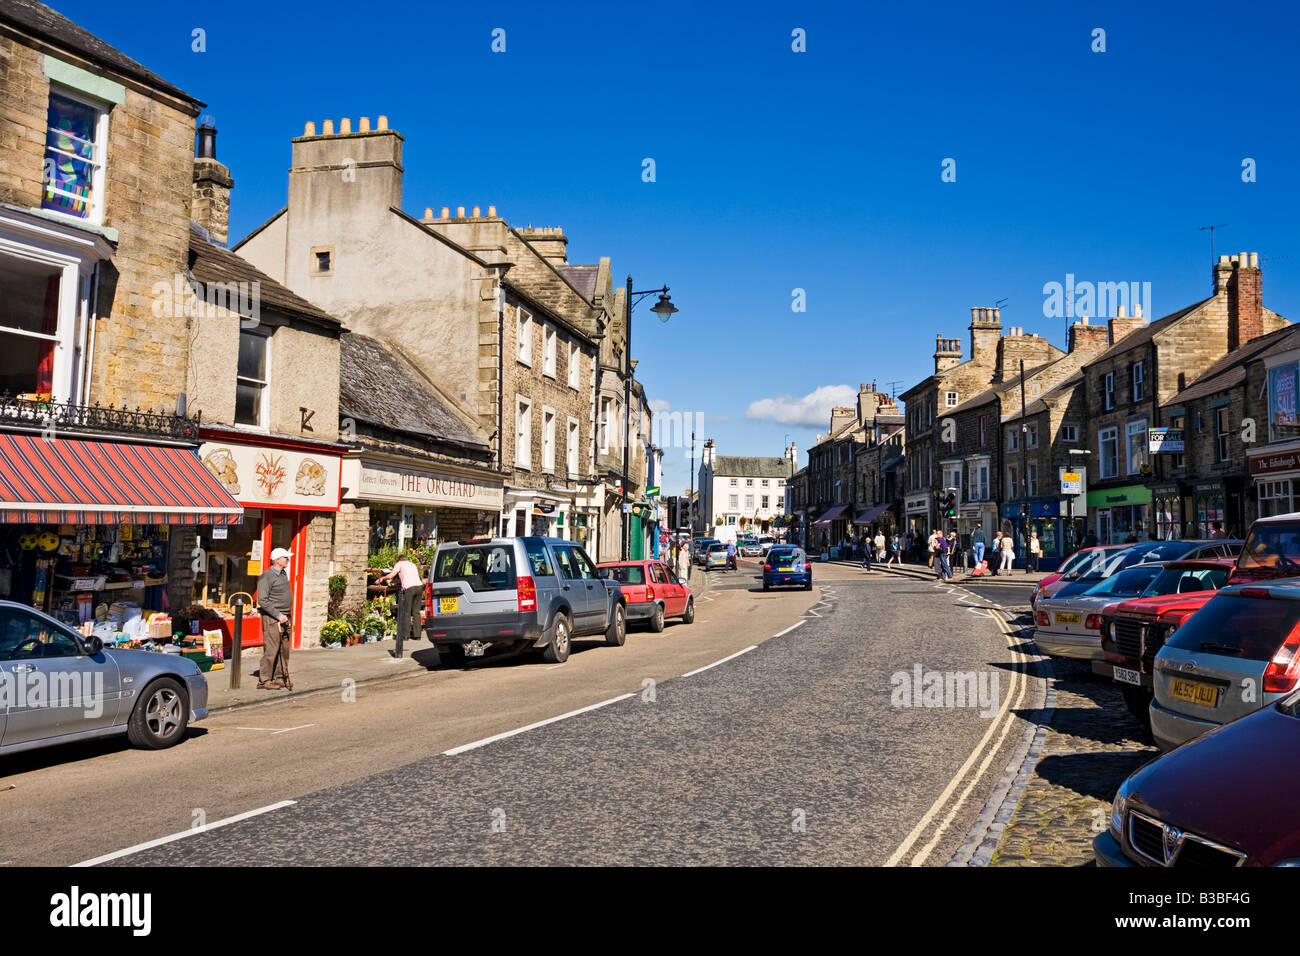 View of the high street, Market Place, Horse Market and Galgate in Barnard Castle, County Durham, England, UK - Stock Image